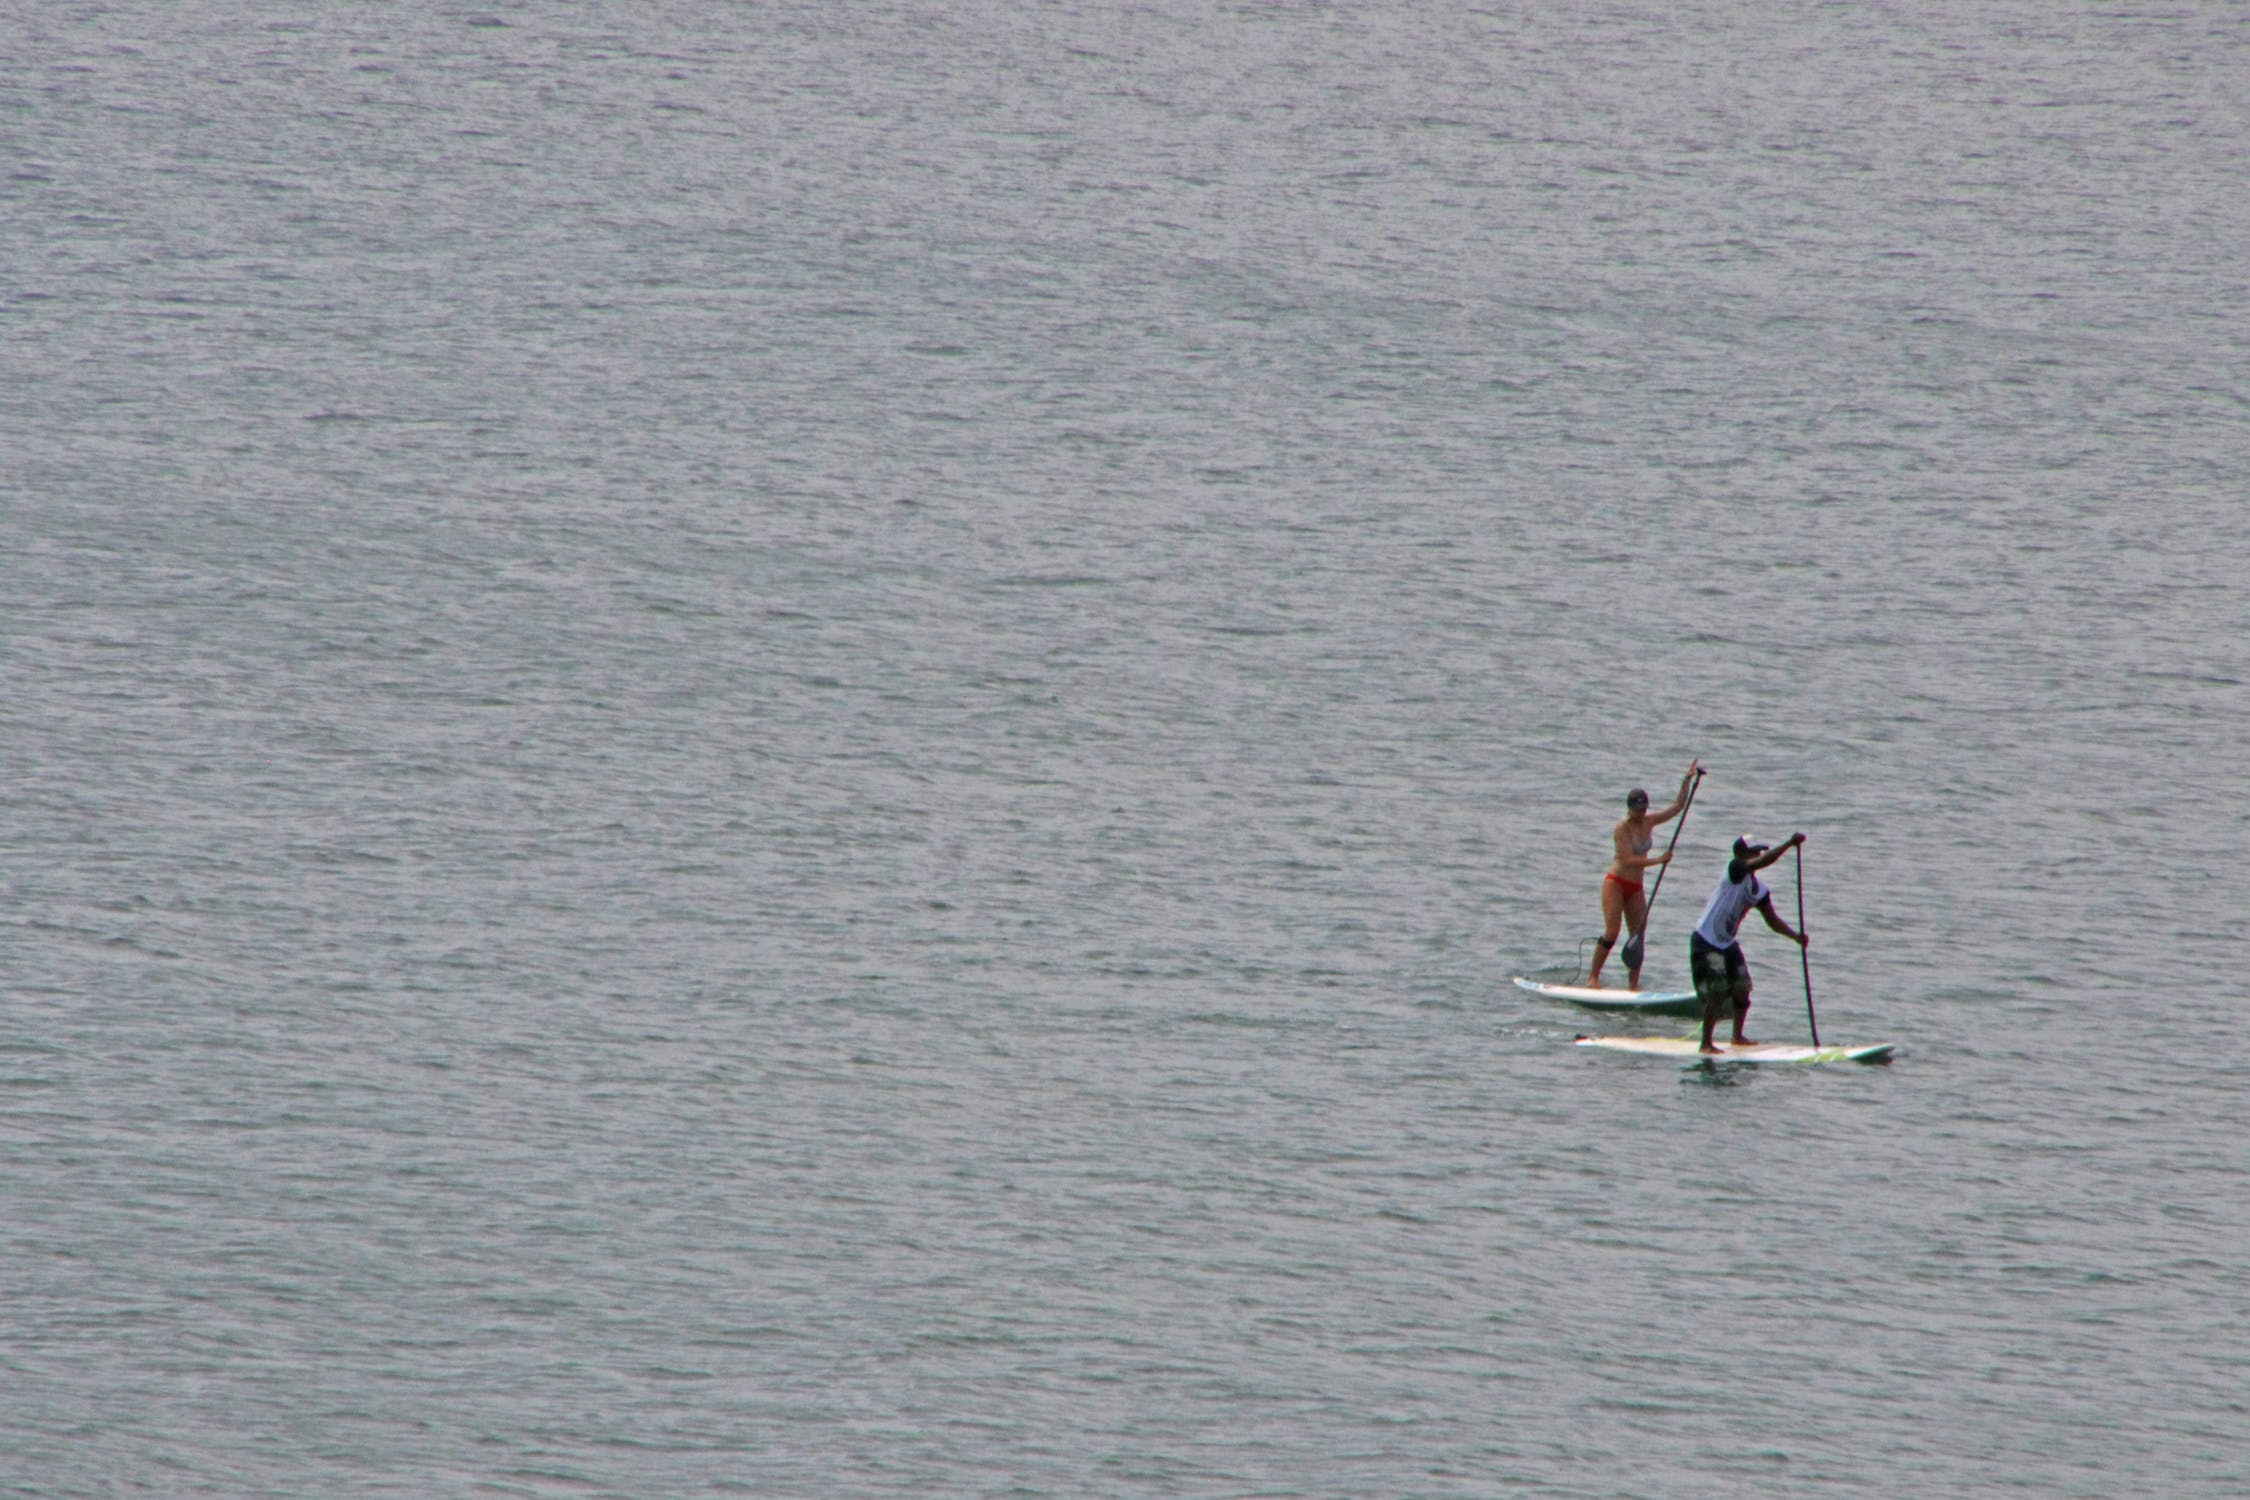 Couple of surfers in the sea photo